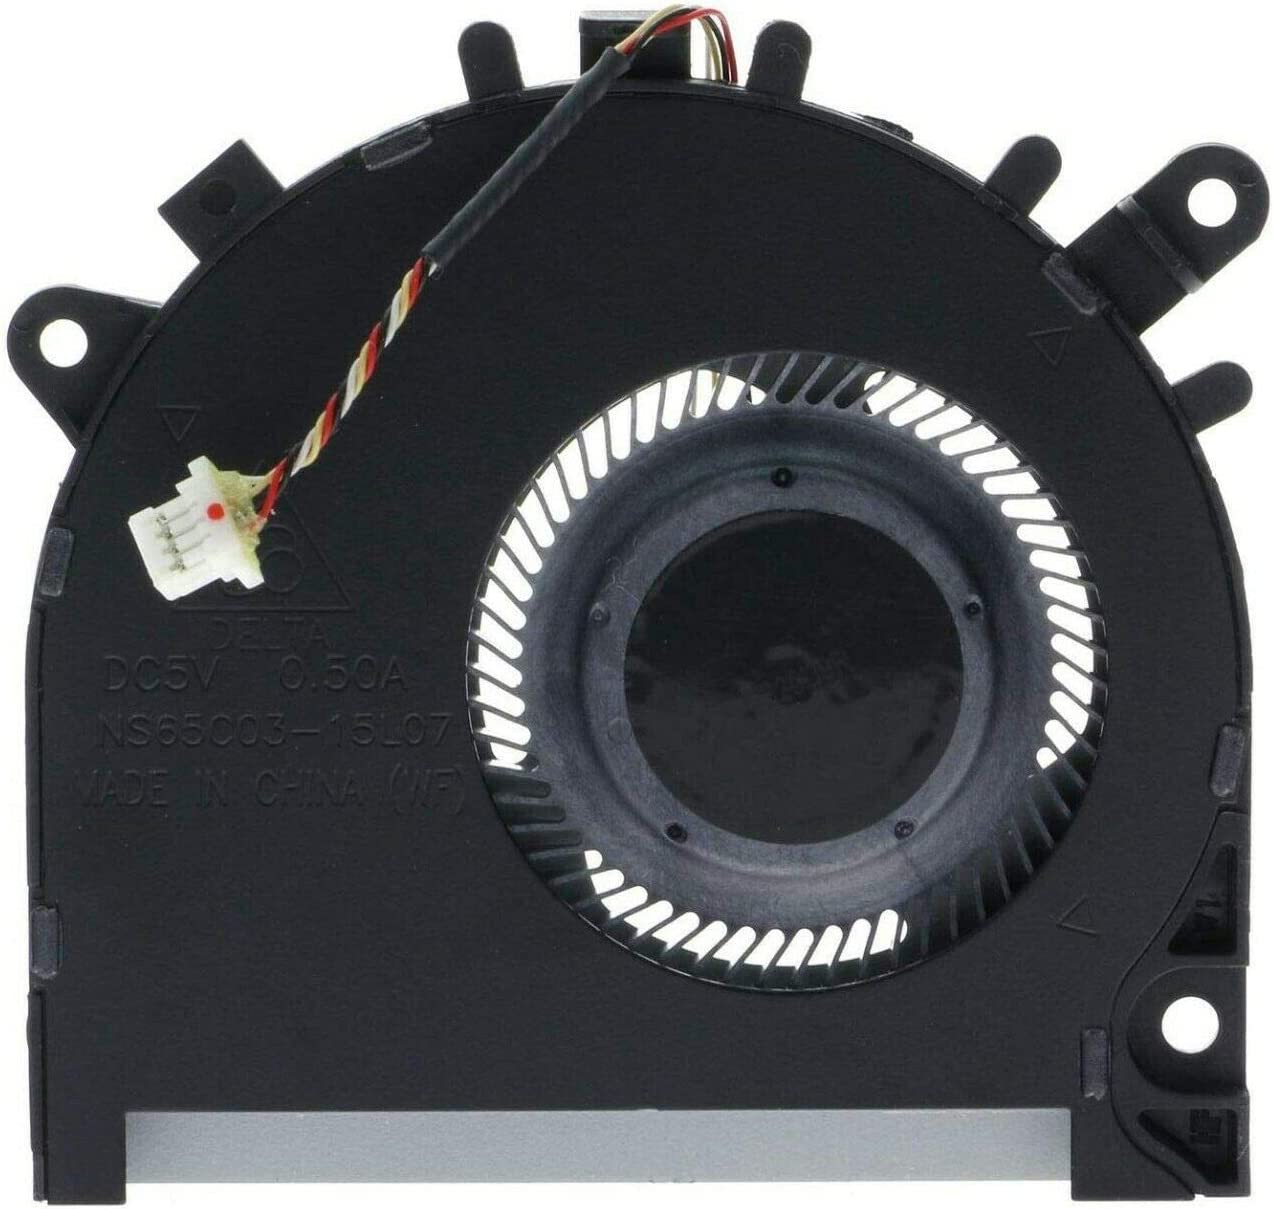 HK-Part Fan for Acer Aspire R5-571 R5-571T R5-571TG Series CPU Cooling Fan